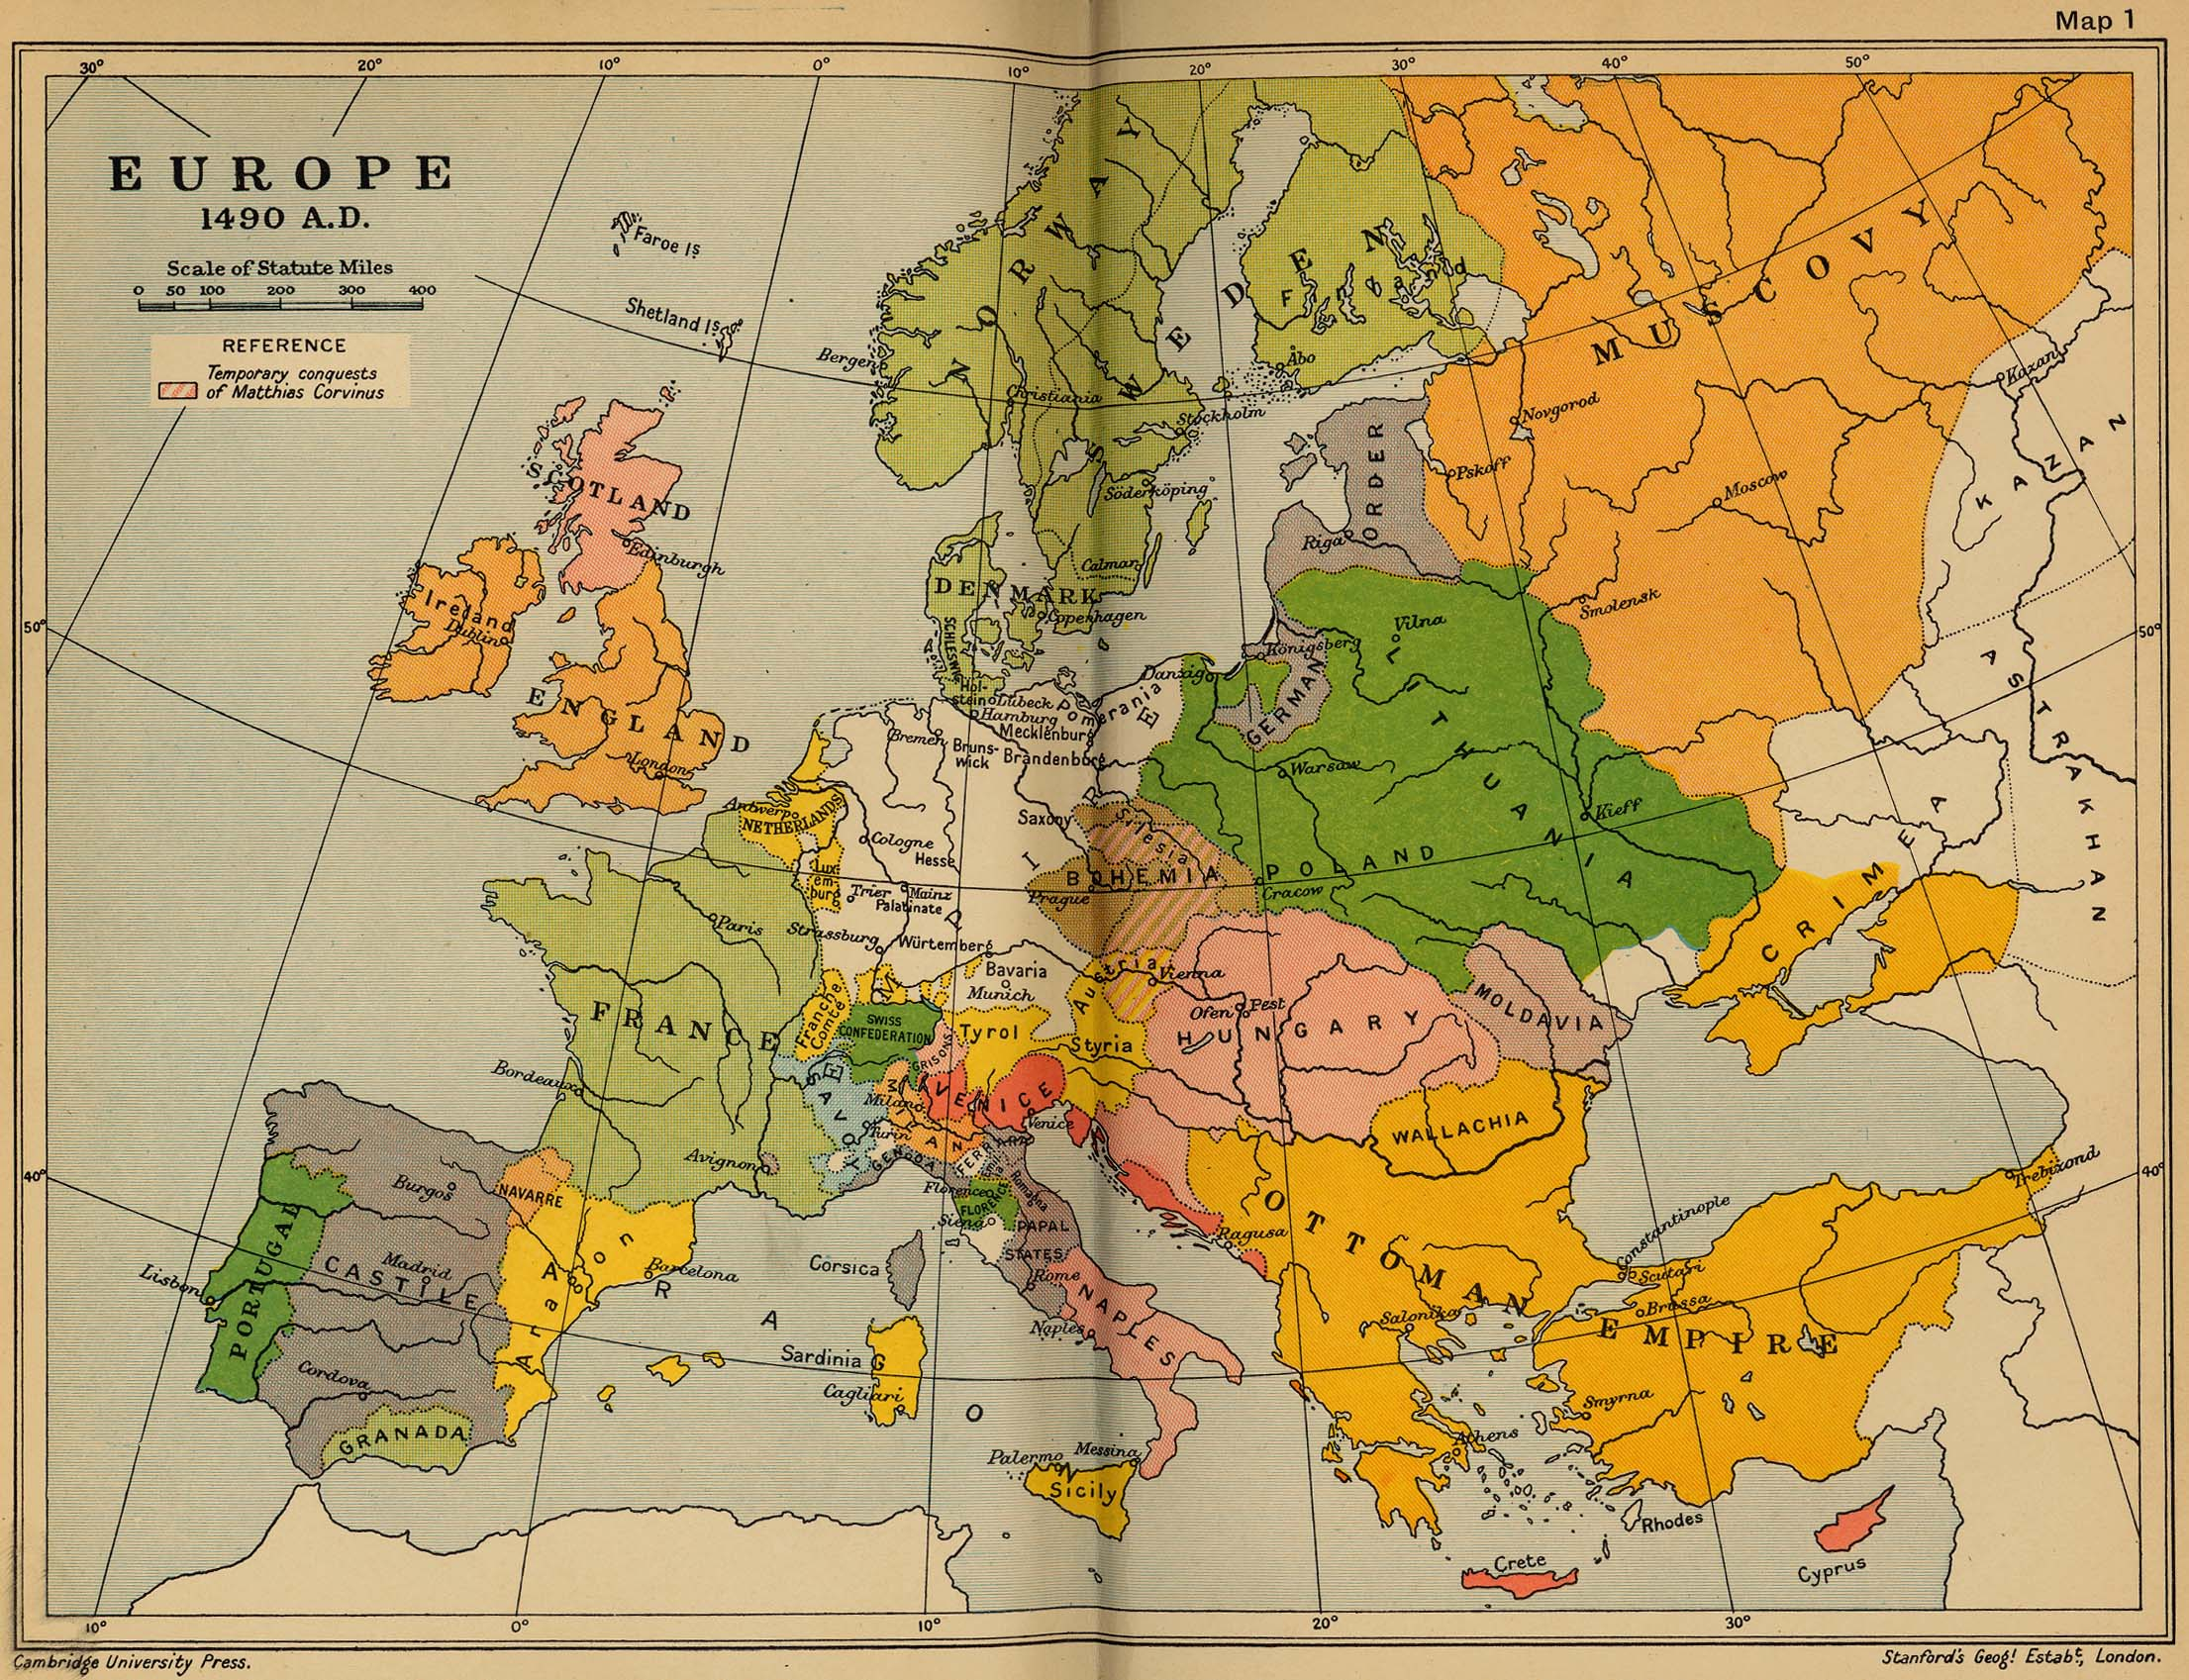 Map of Europe 1490